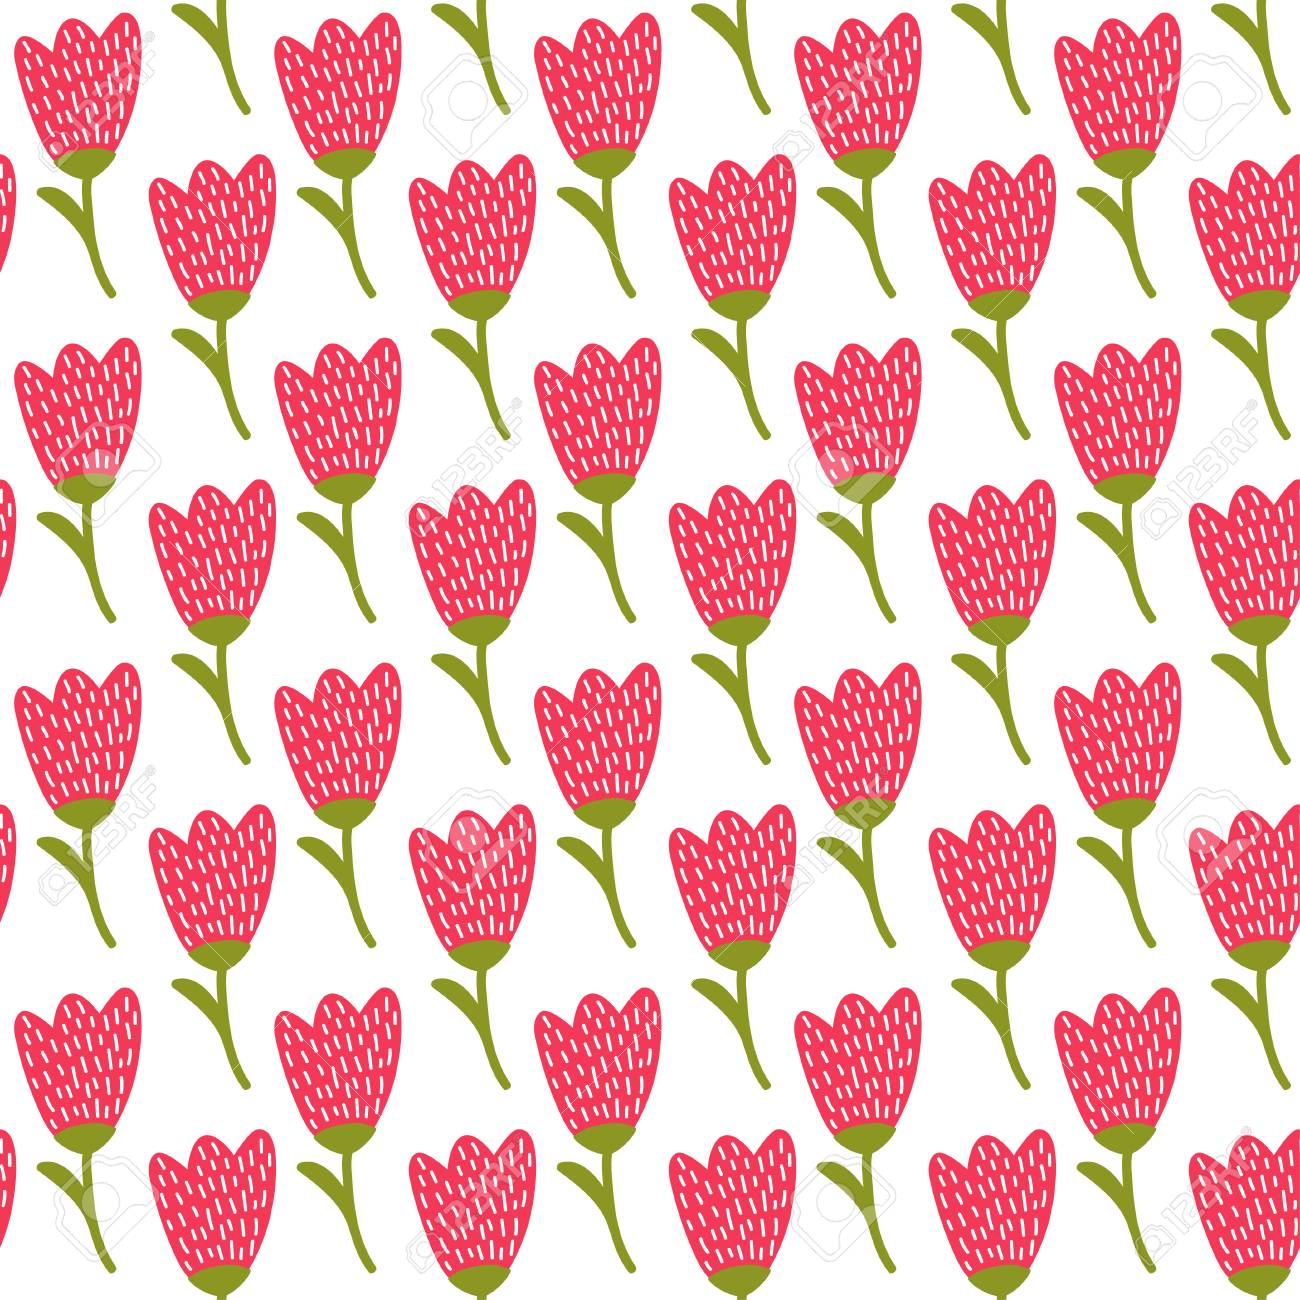 Simple doodle red tulip pattern cute flower seamless background simple doodle red tulip pattern cute flower seamless background summer wallpaper stock vector voltagebd Images